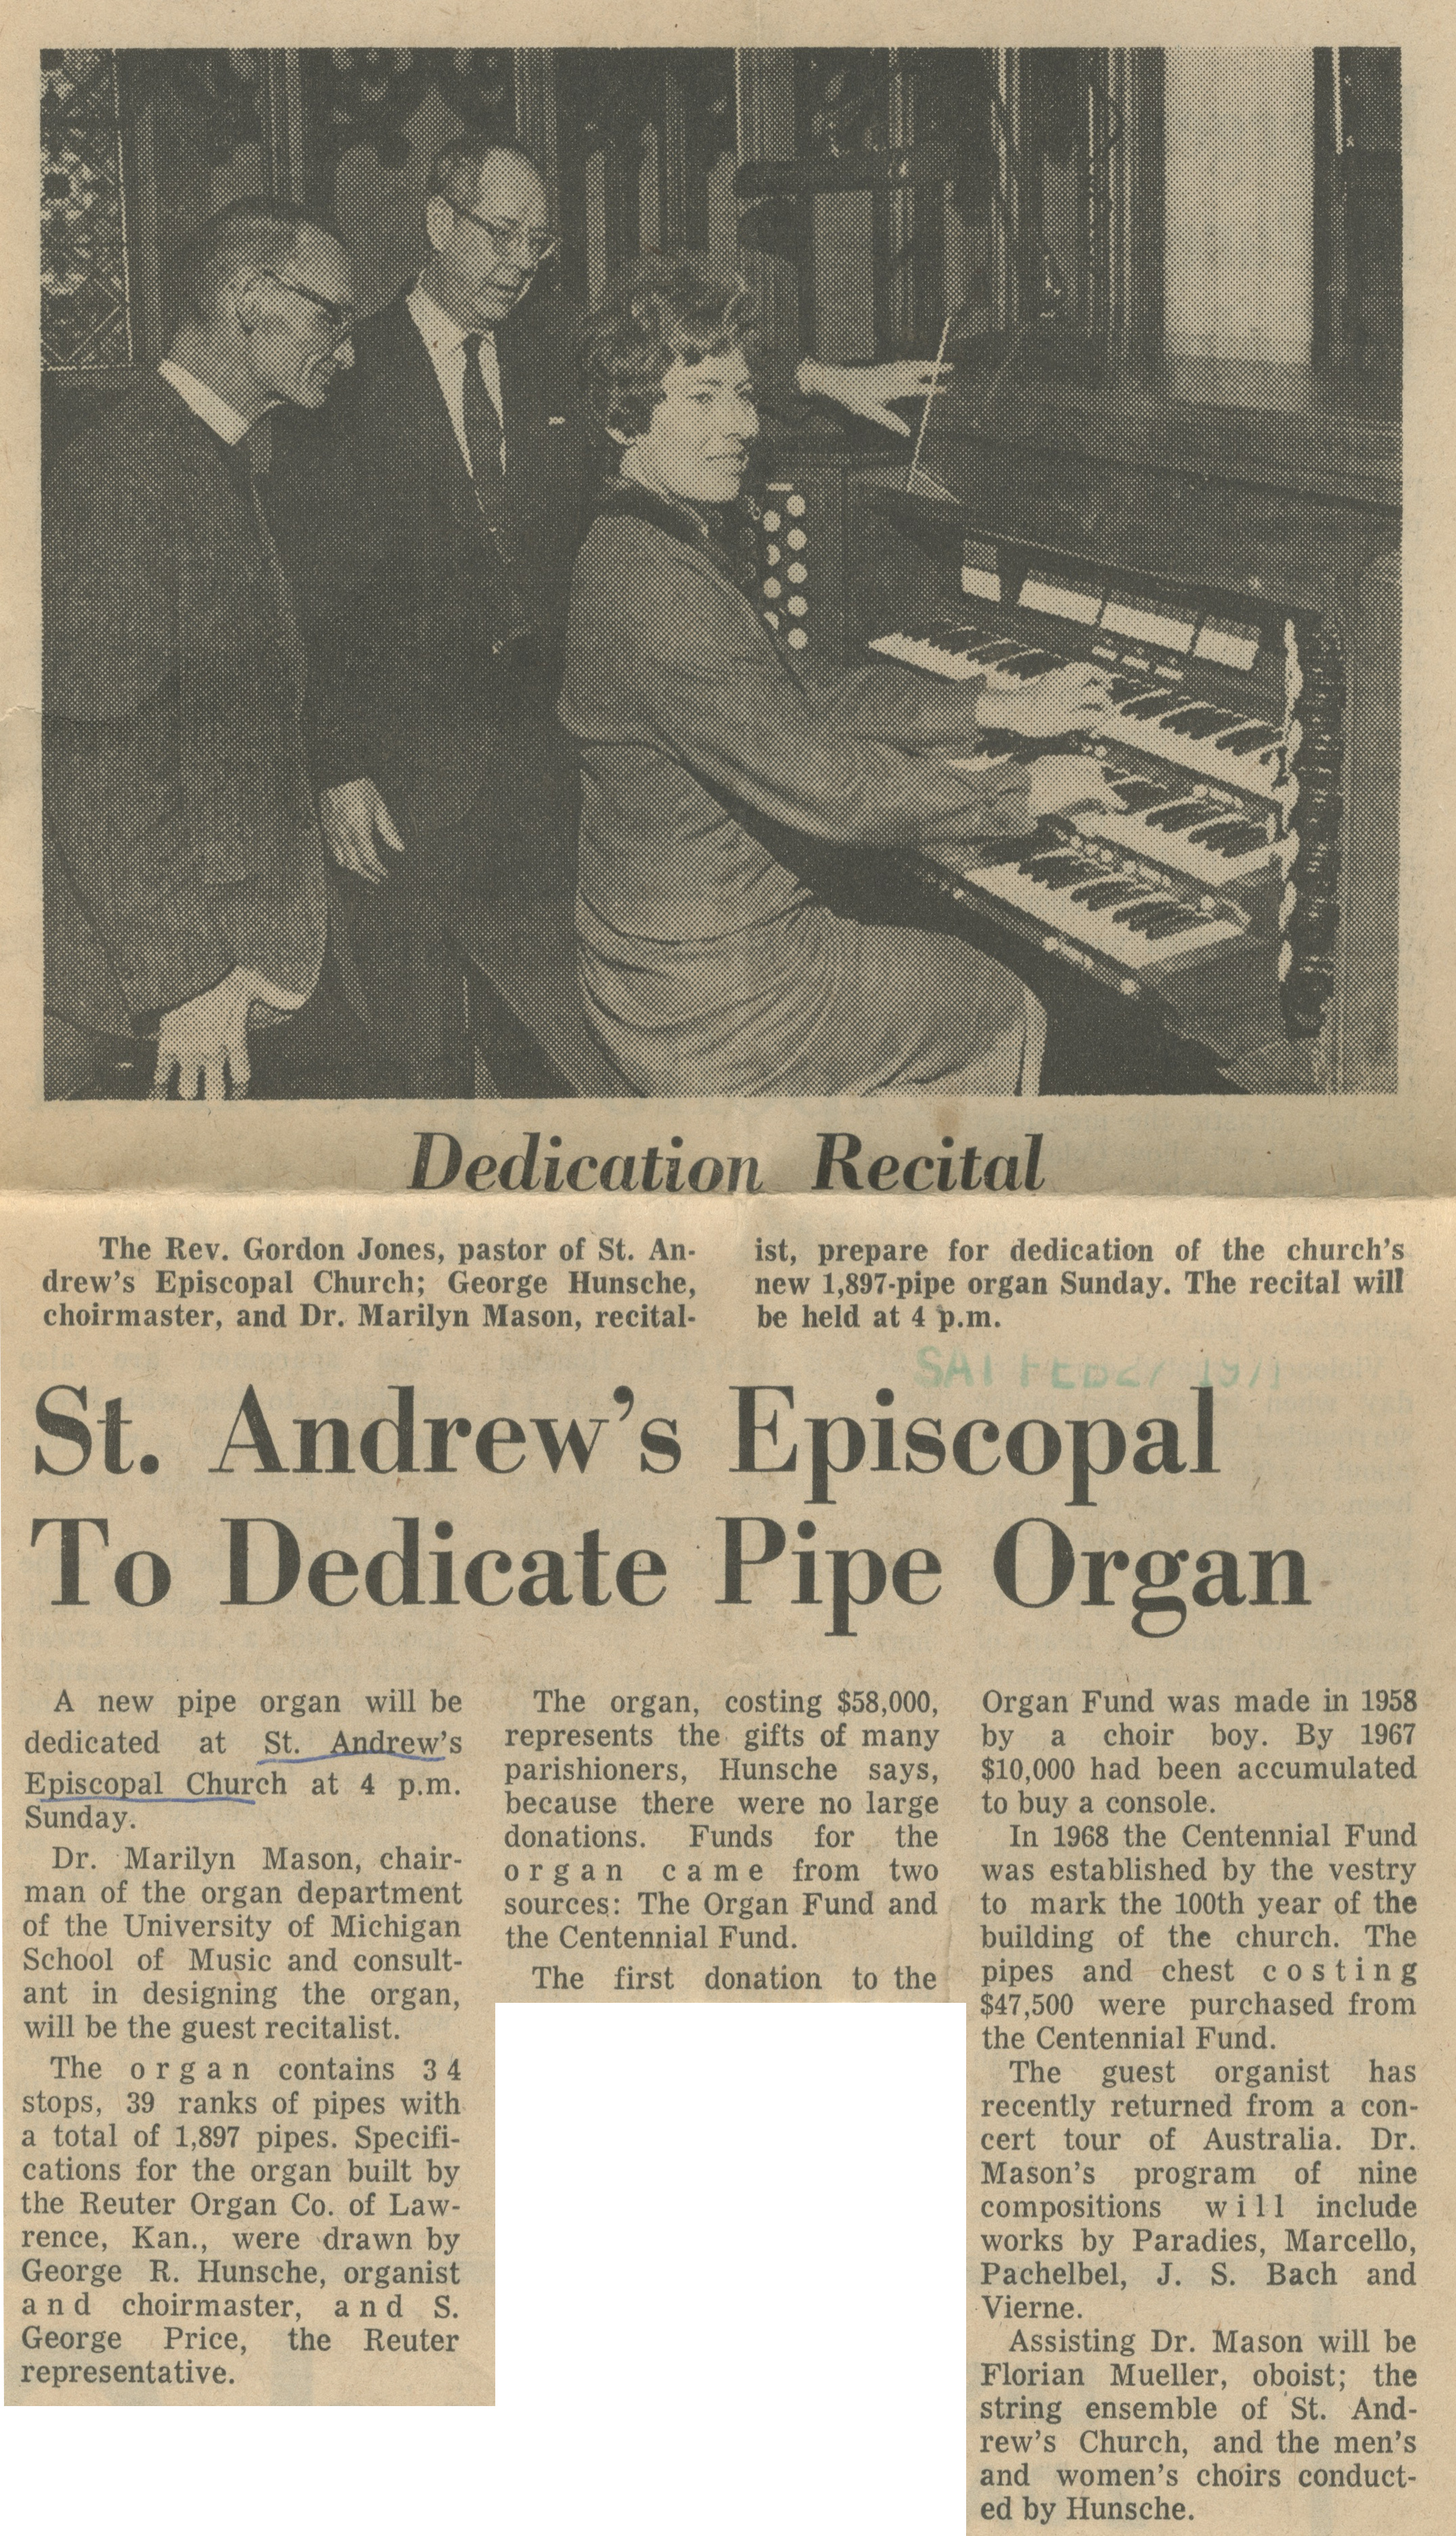 St. Andrew's Episcopal To Dedicate Pipe Organ image